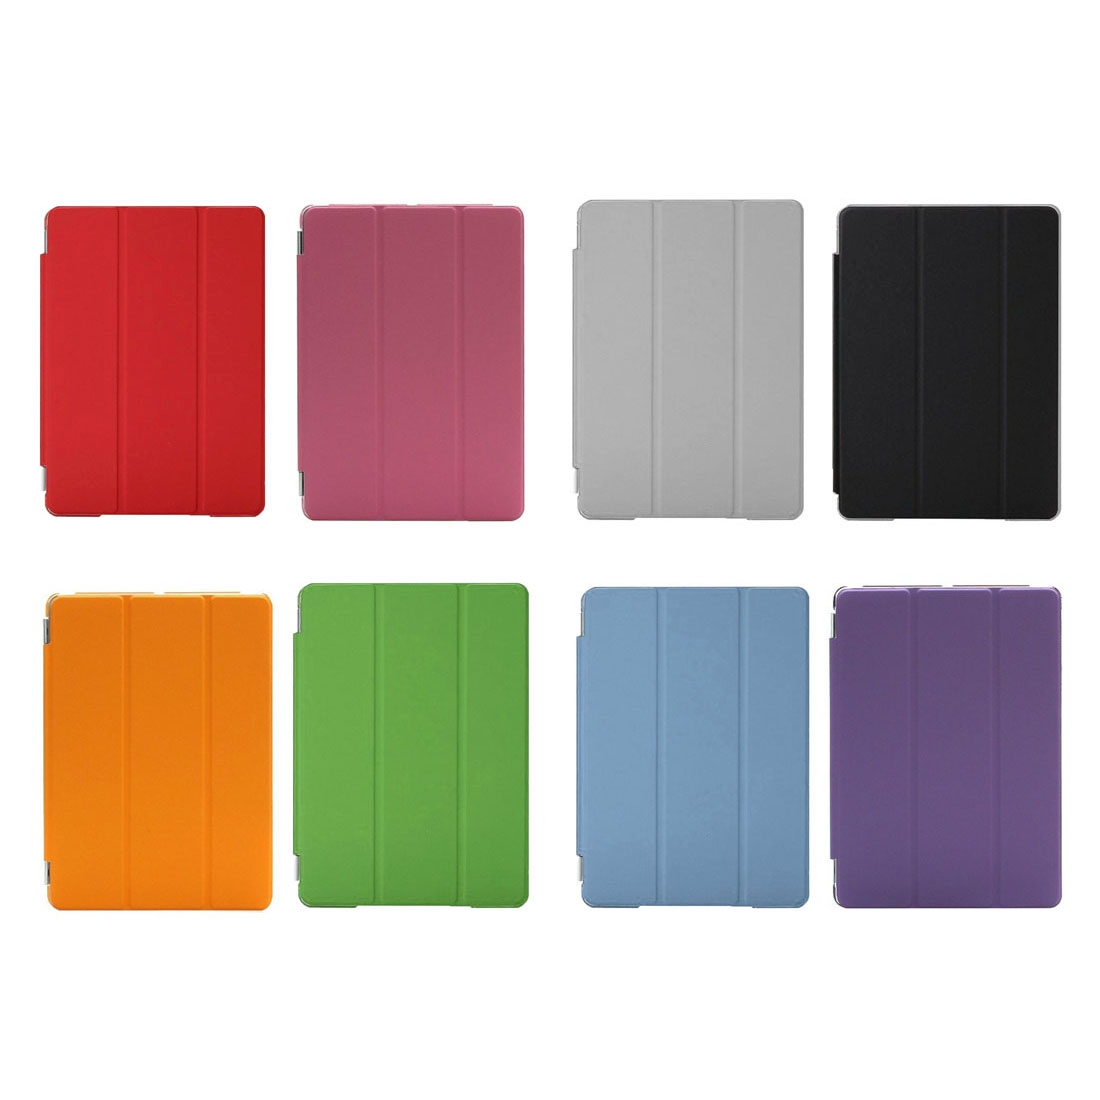 iPad Air Cover Features A Stylish Protective Leather Casing And A Tri-Fold Stand (Blue)